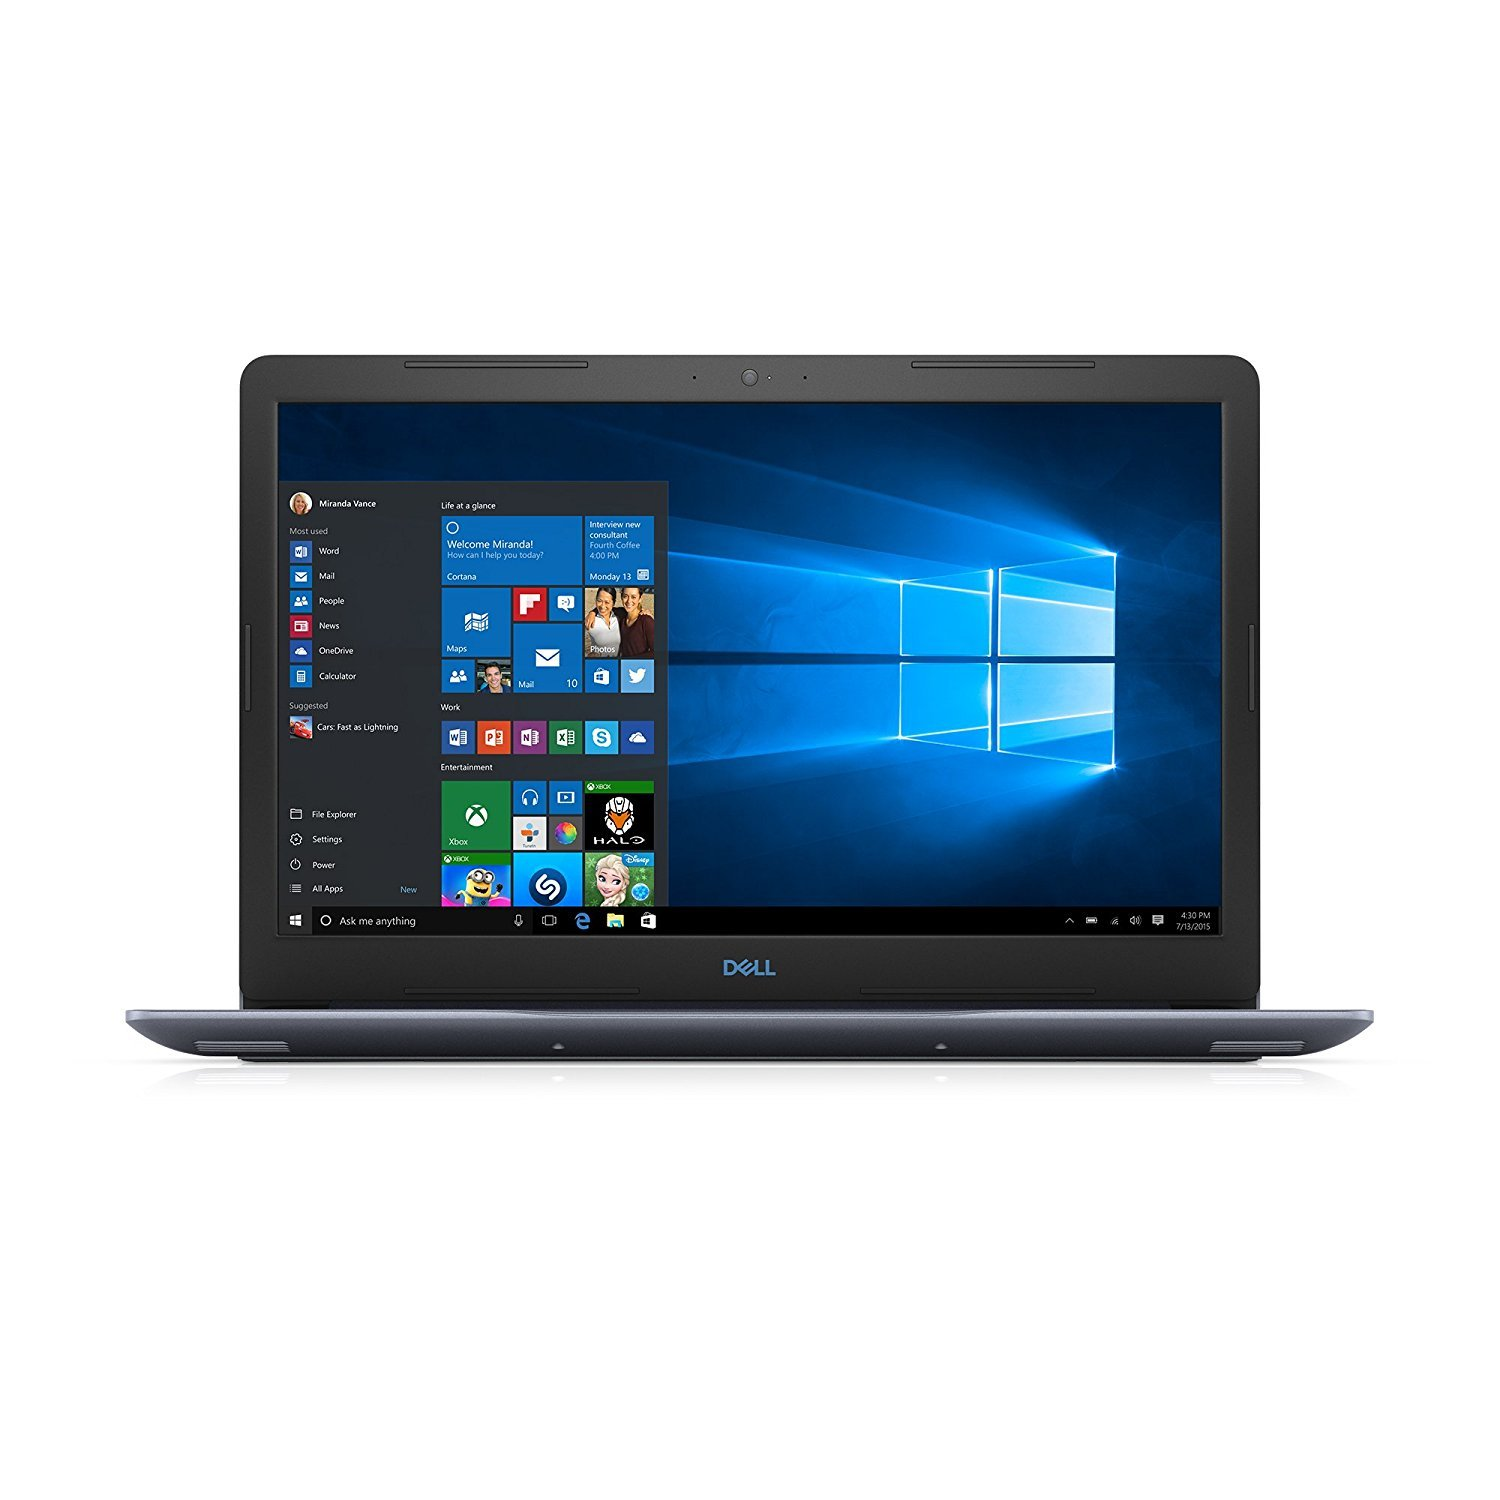 2018 Premium Dell G3 15.6 Inch FHD Display Gaming Laptop Intel Core i5 2.3GHz up to 4.0 GHz, 8GB DDR4 RAM, 128GB SSD 1TB HDD, Nvidia GTX 1050Ti 4GB, Backlit Keyboard, Bluetooth, WiFi, Windows 10